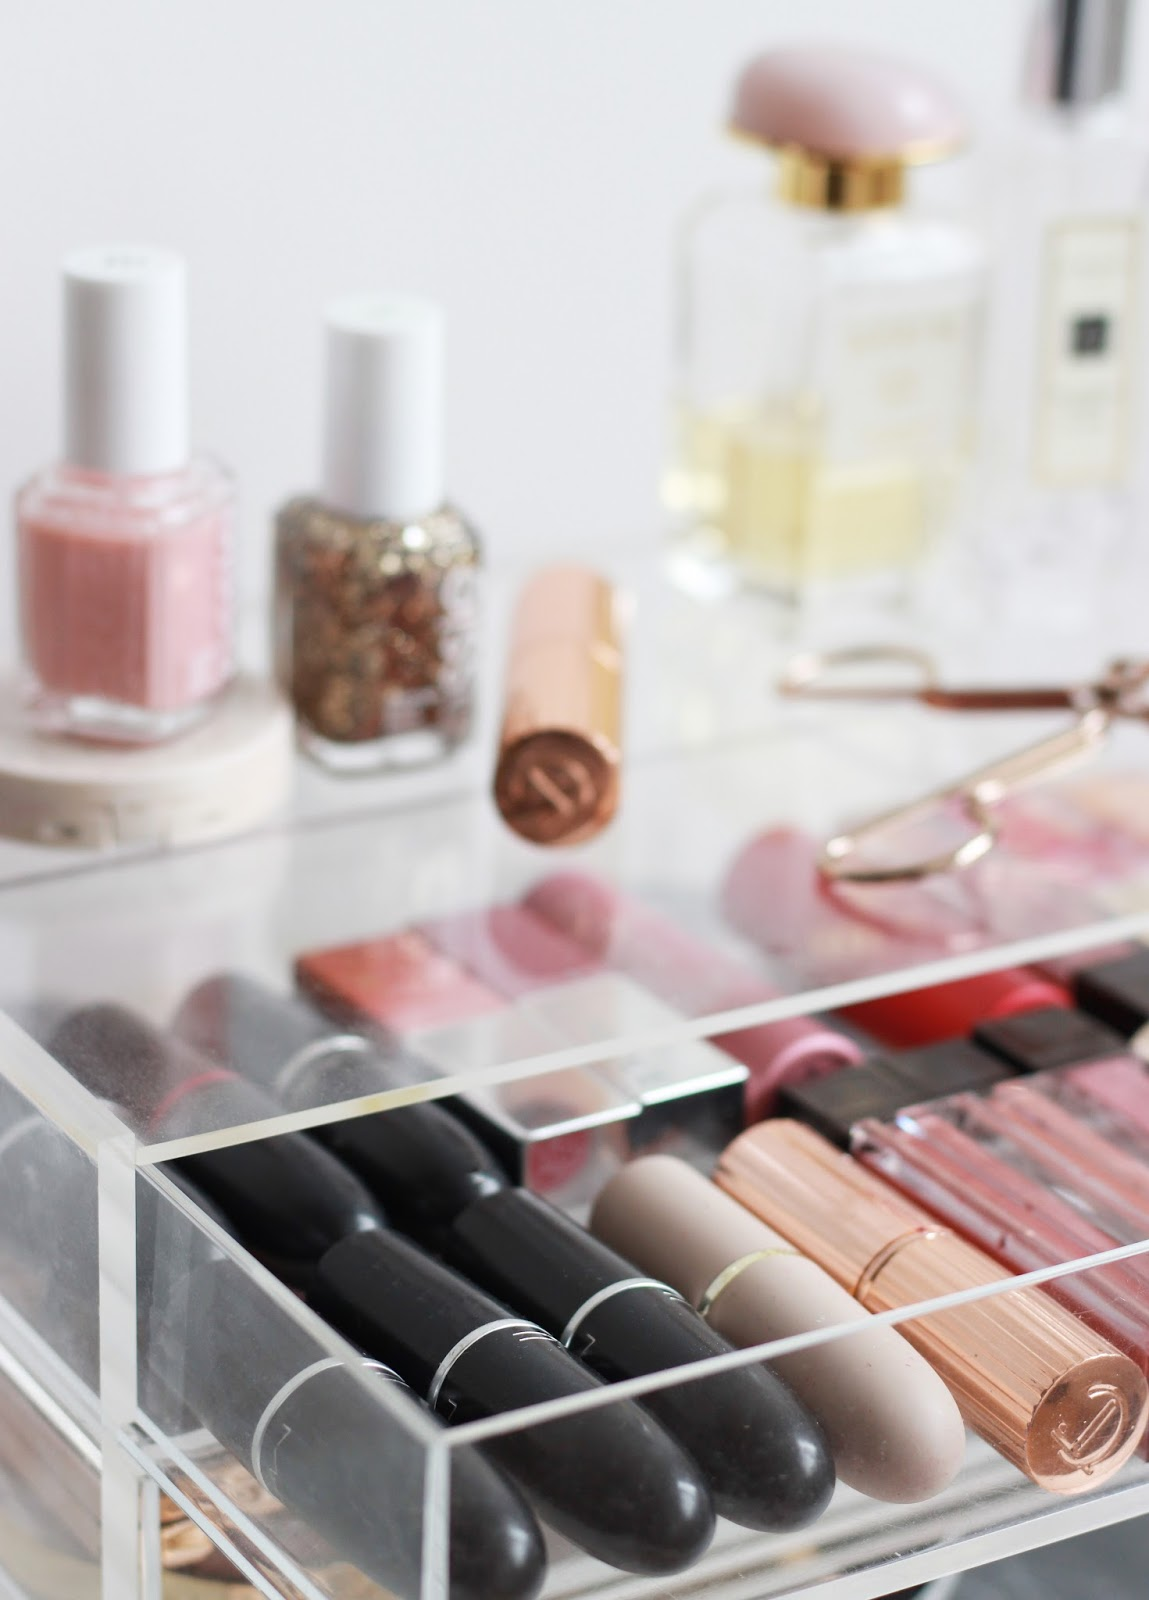 After neglecting makeup organisation throughout Winter Iu0027ve switched products around filled the drawers up with the products Iu0027ve recently picked up and ... & A Muji Makeup Storage Overhaul | Pint Sized Beauty